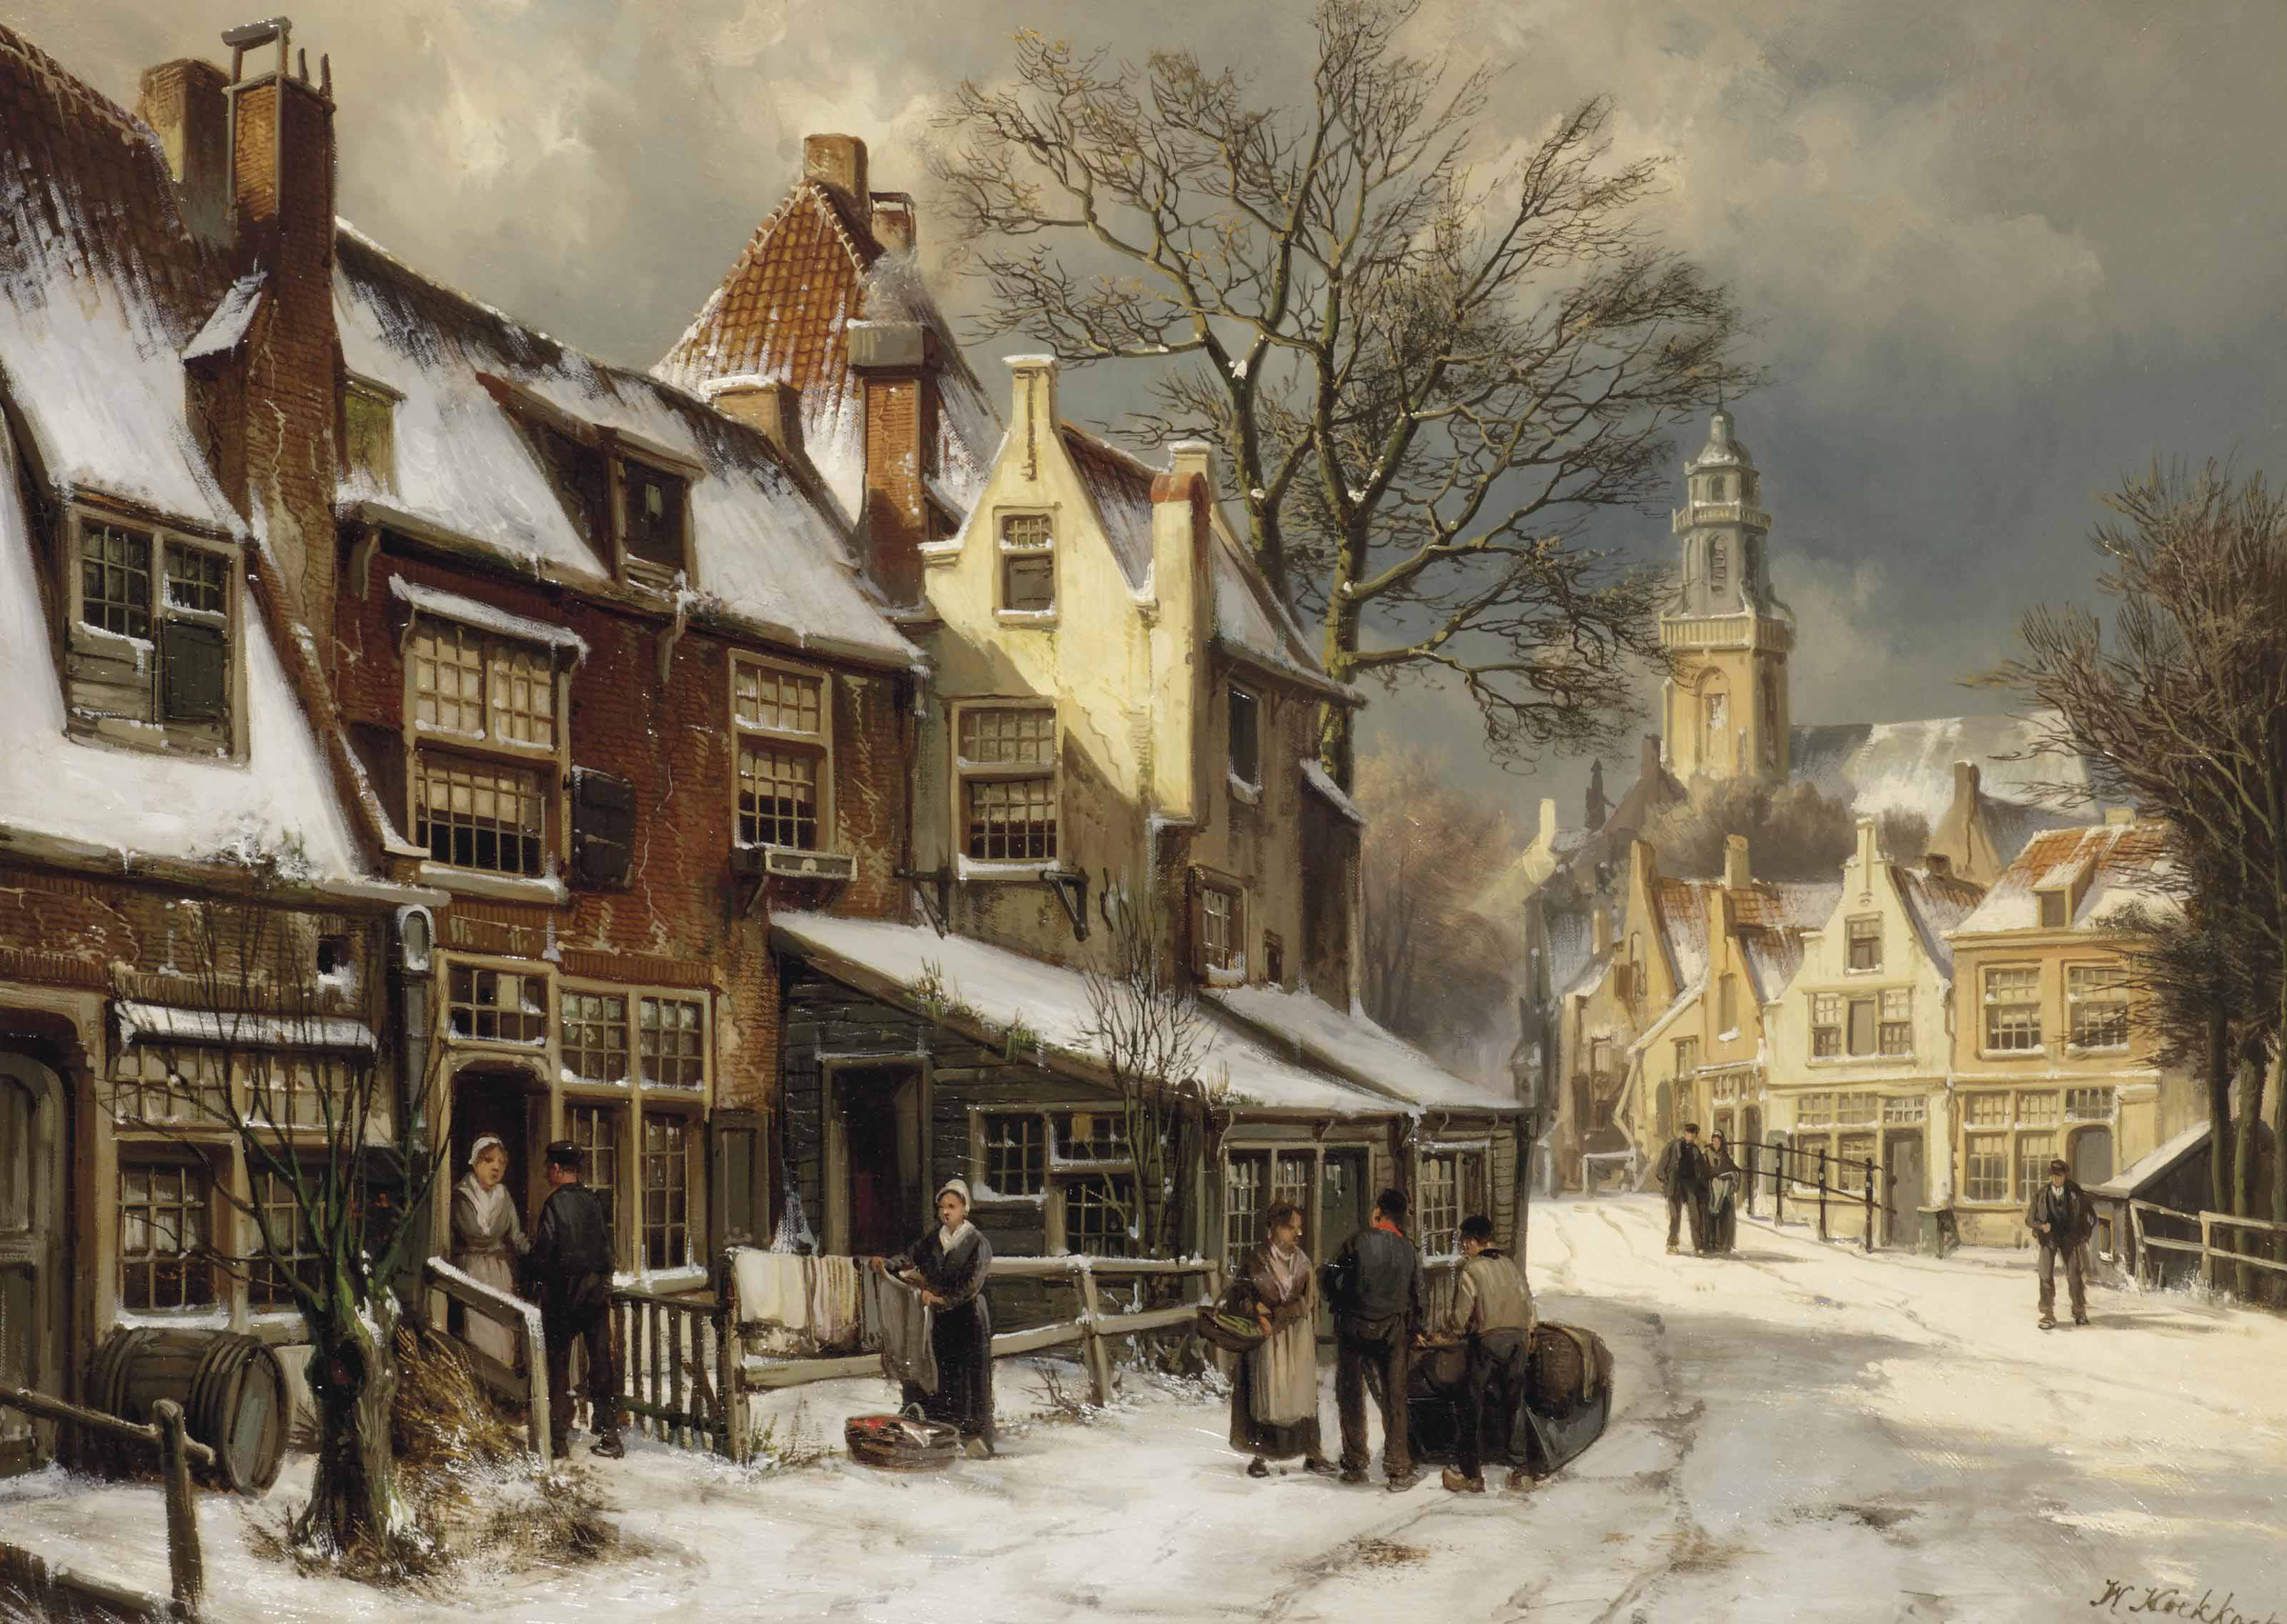 A Dutch town in winter